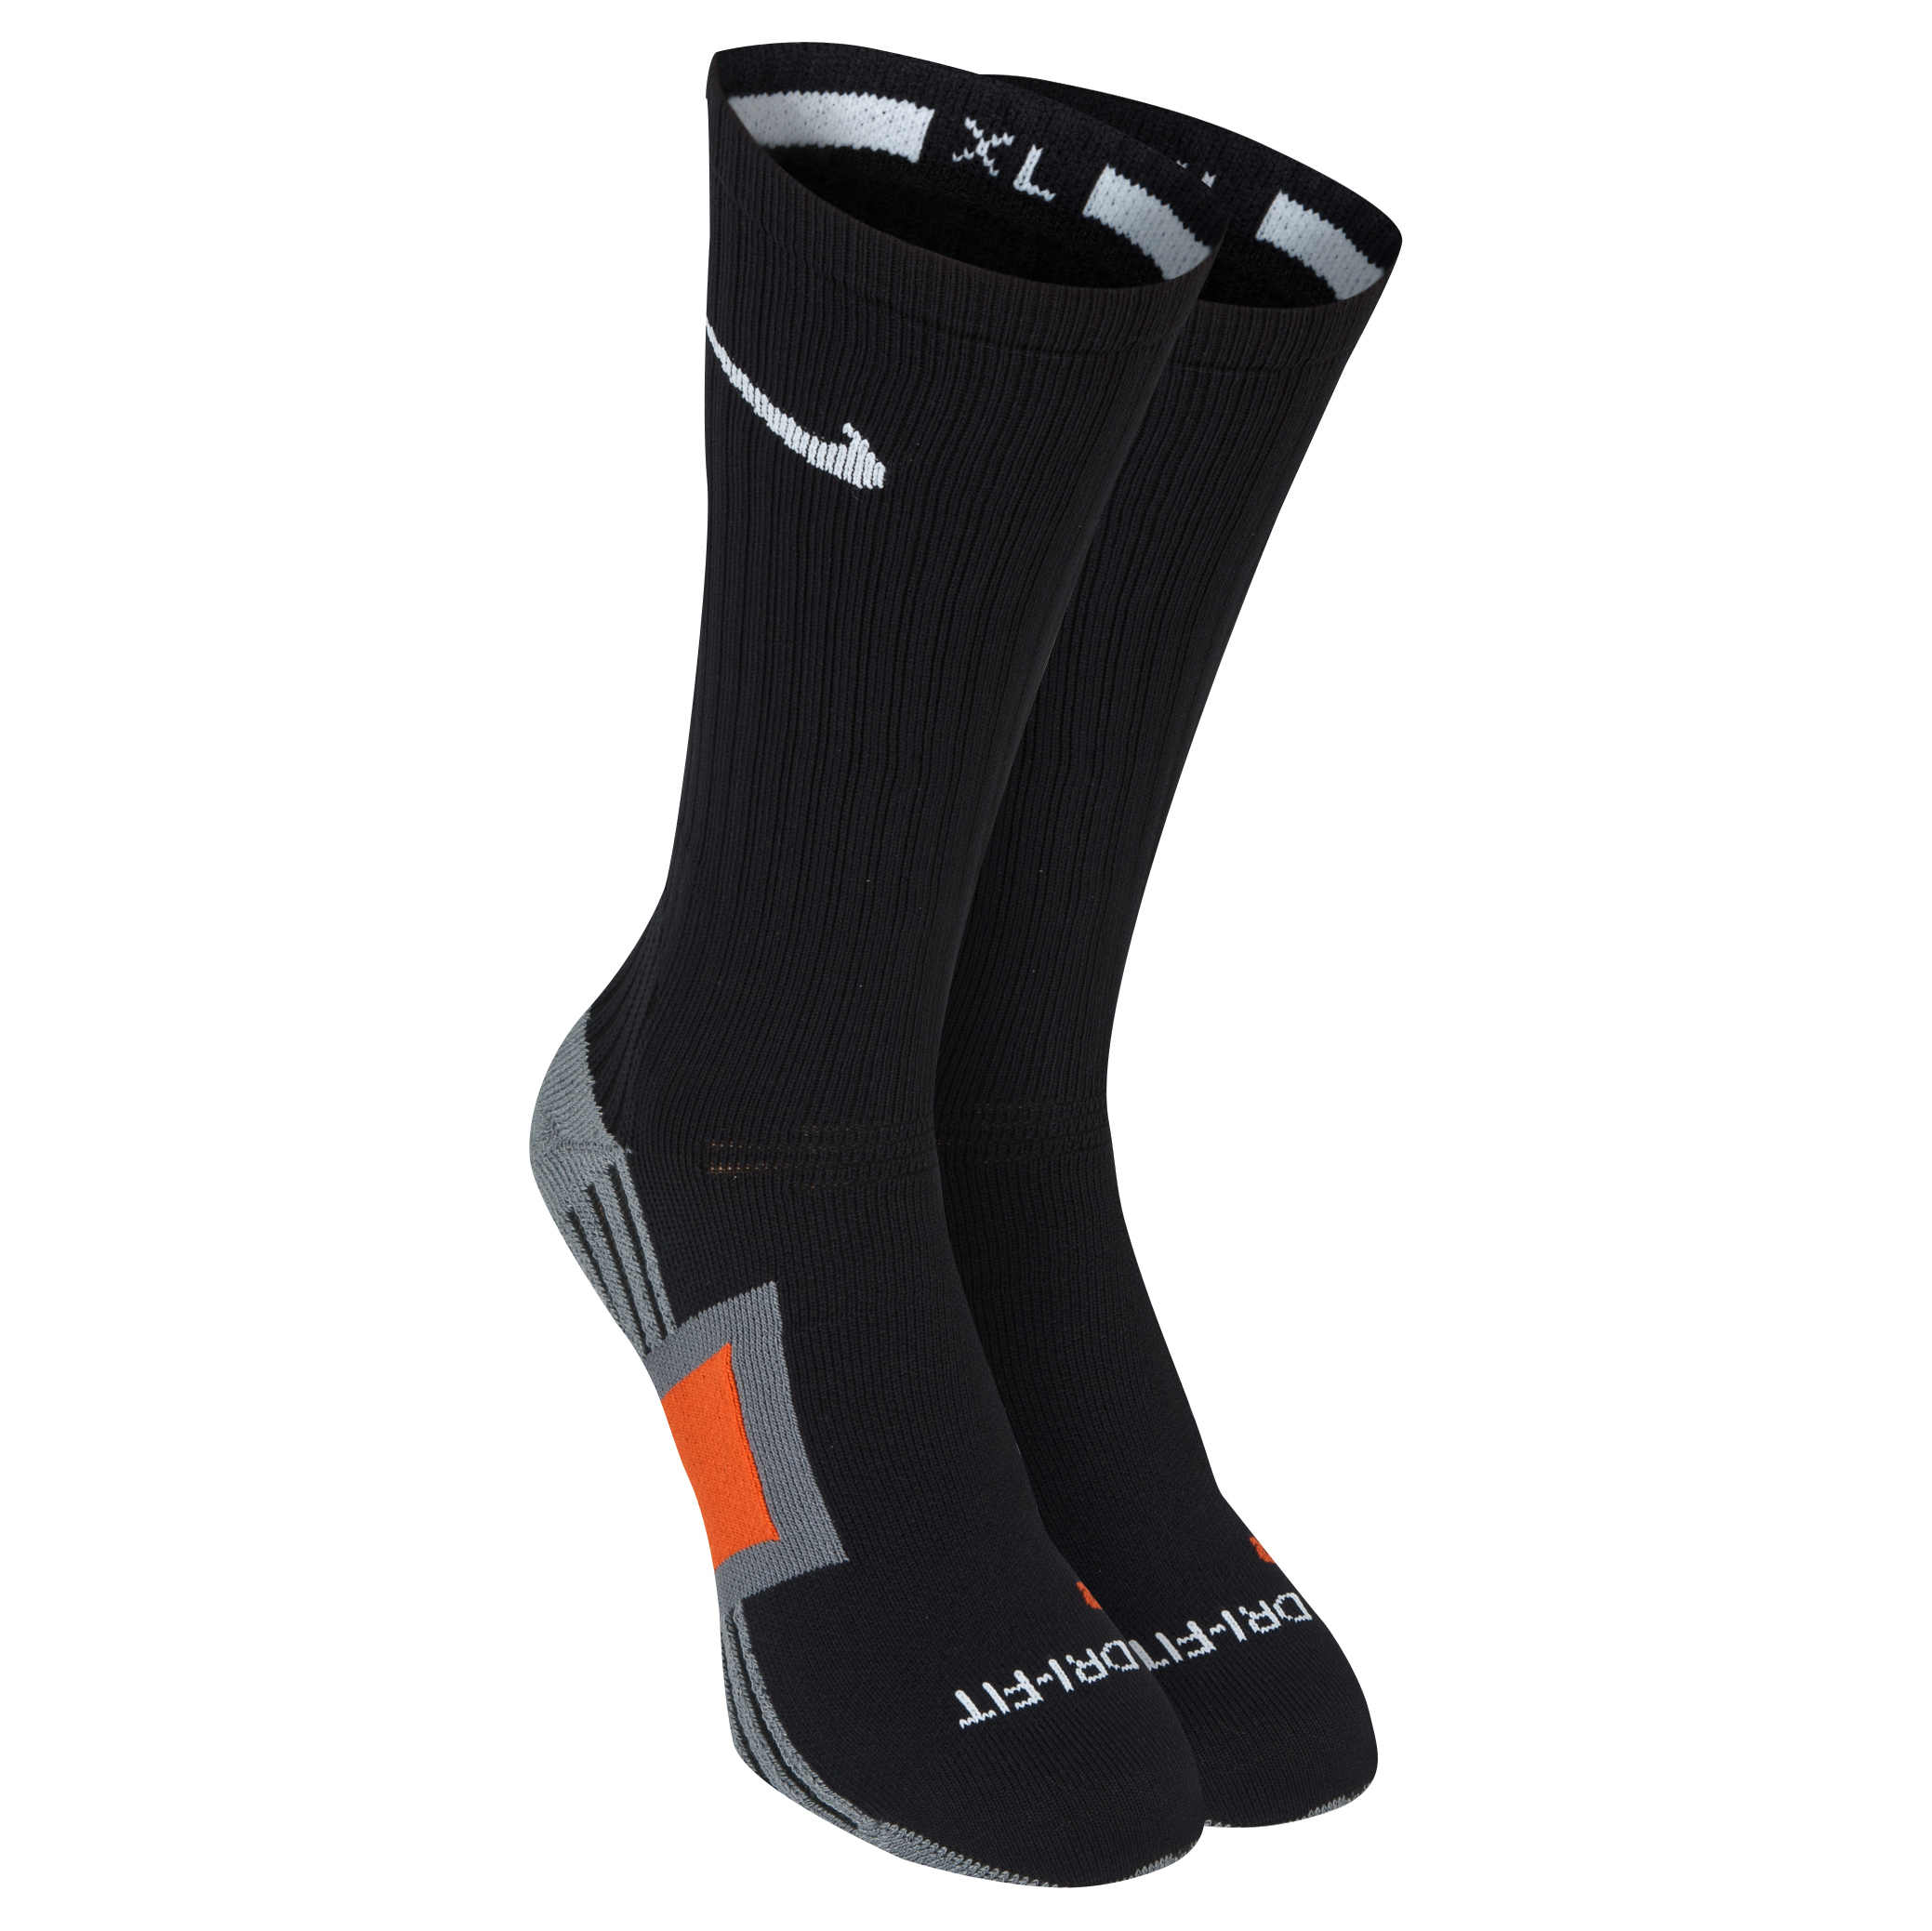 Nike Dri Fit Channel Cushioning Practice Sock-Black/Carbon Heather/Flint Grey/Deep Orange Black